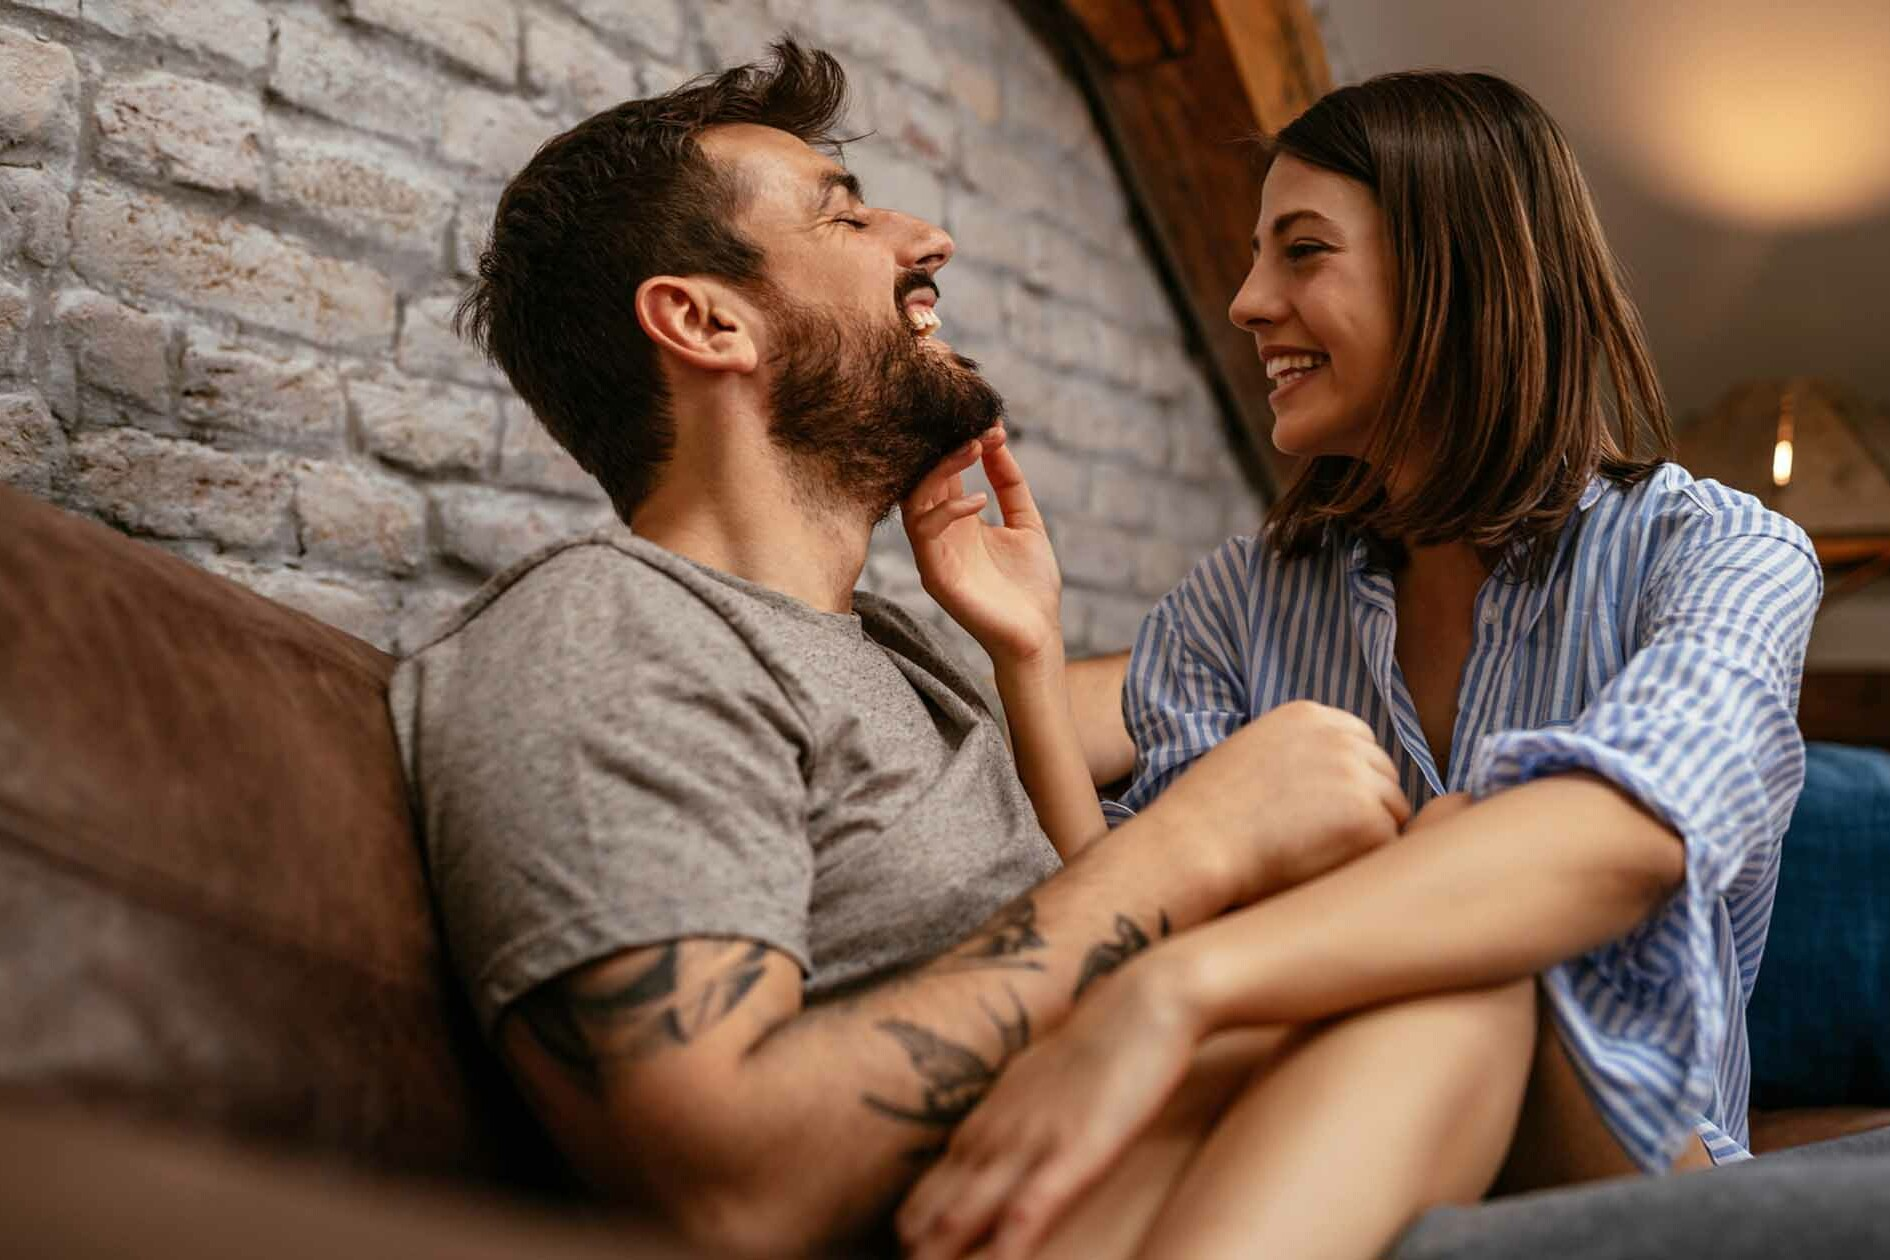 Playful Couple Cuddles on Couch Laughing at Bad Dating Advice